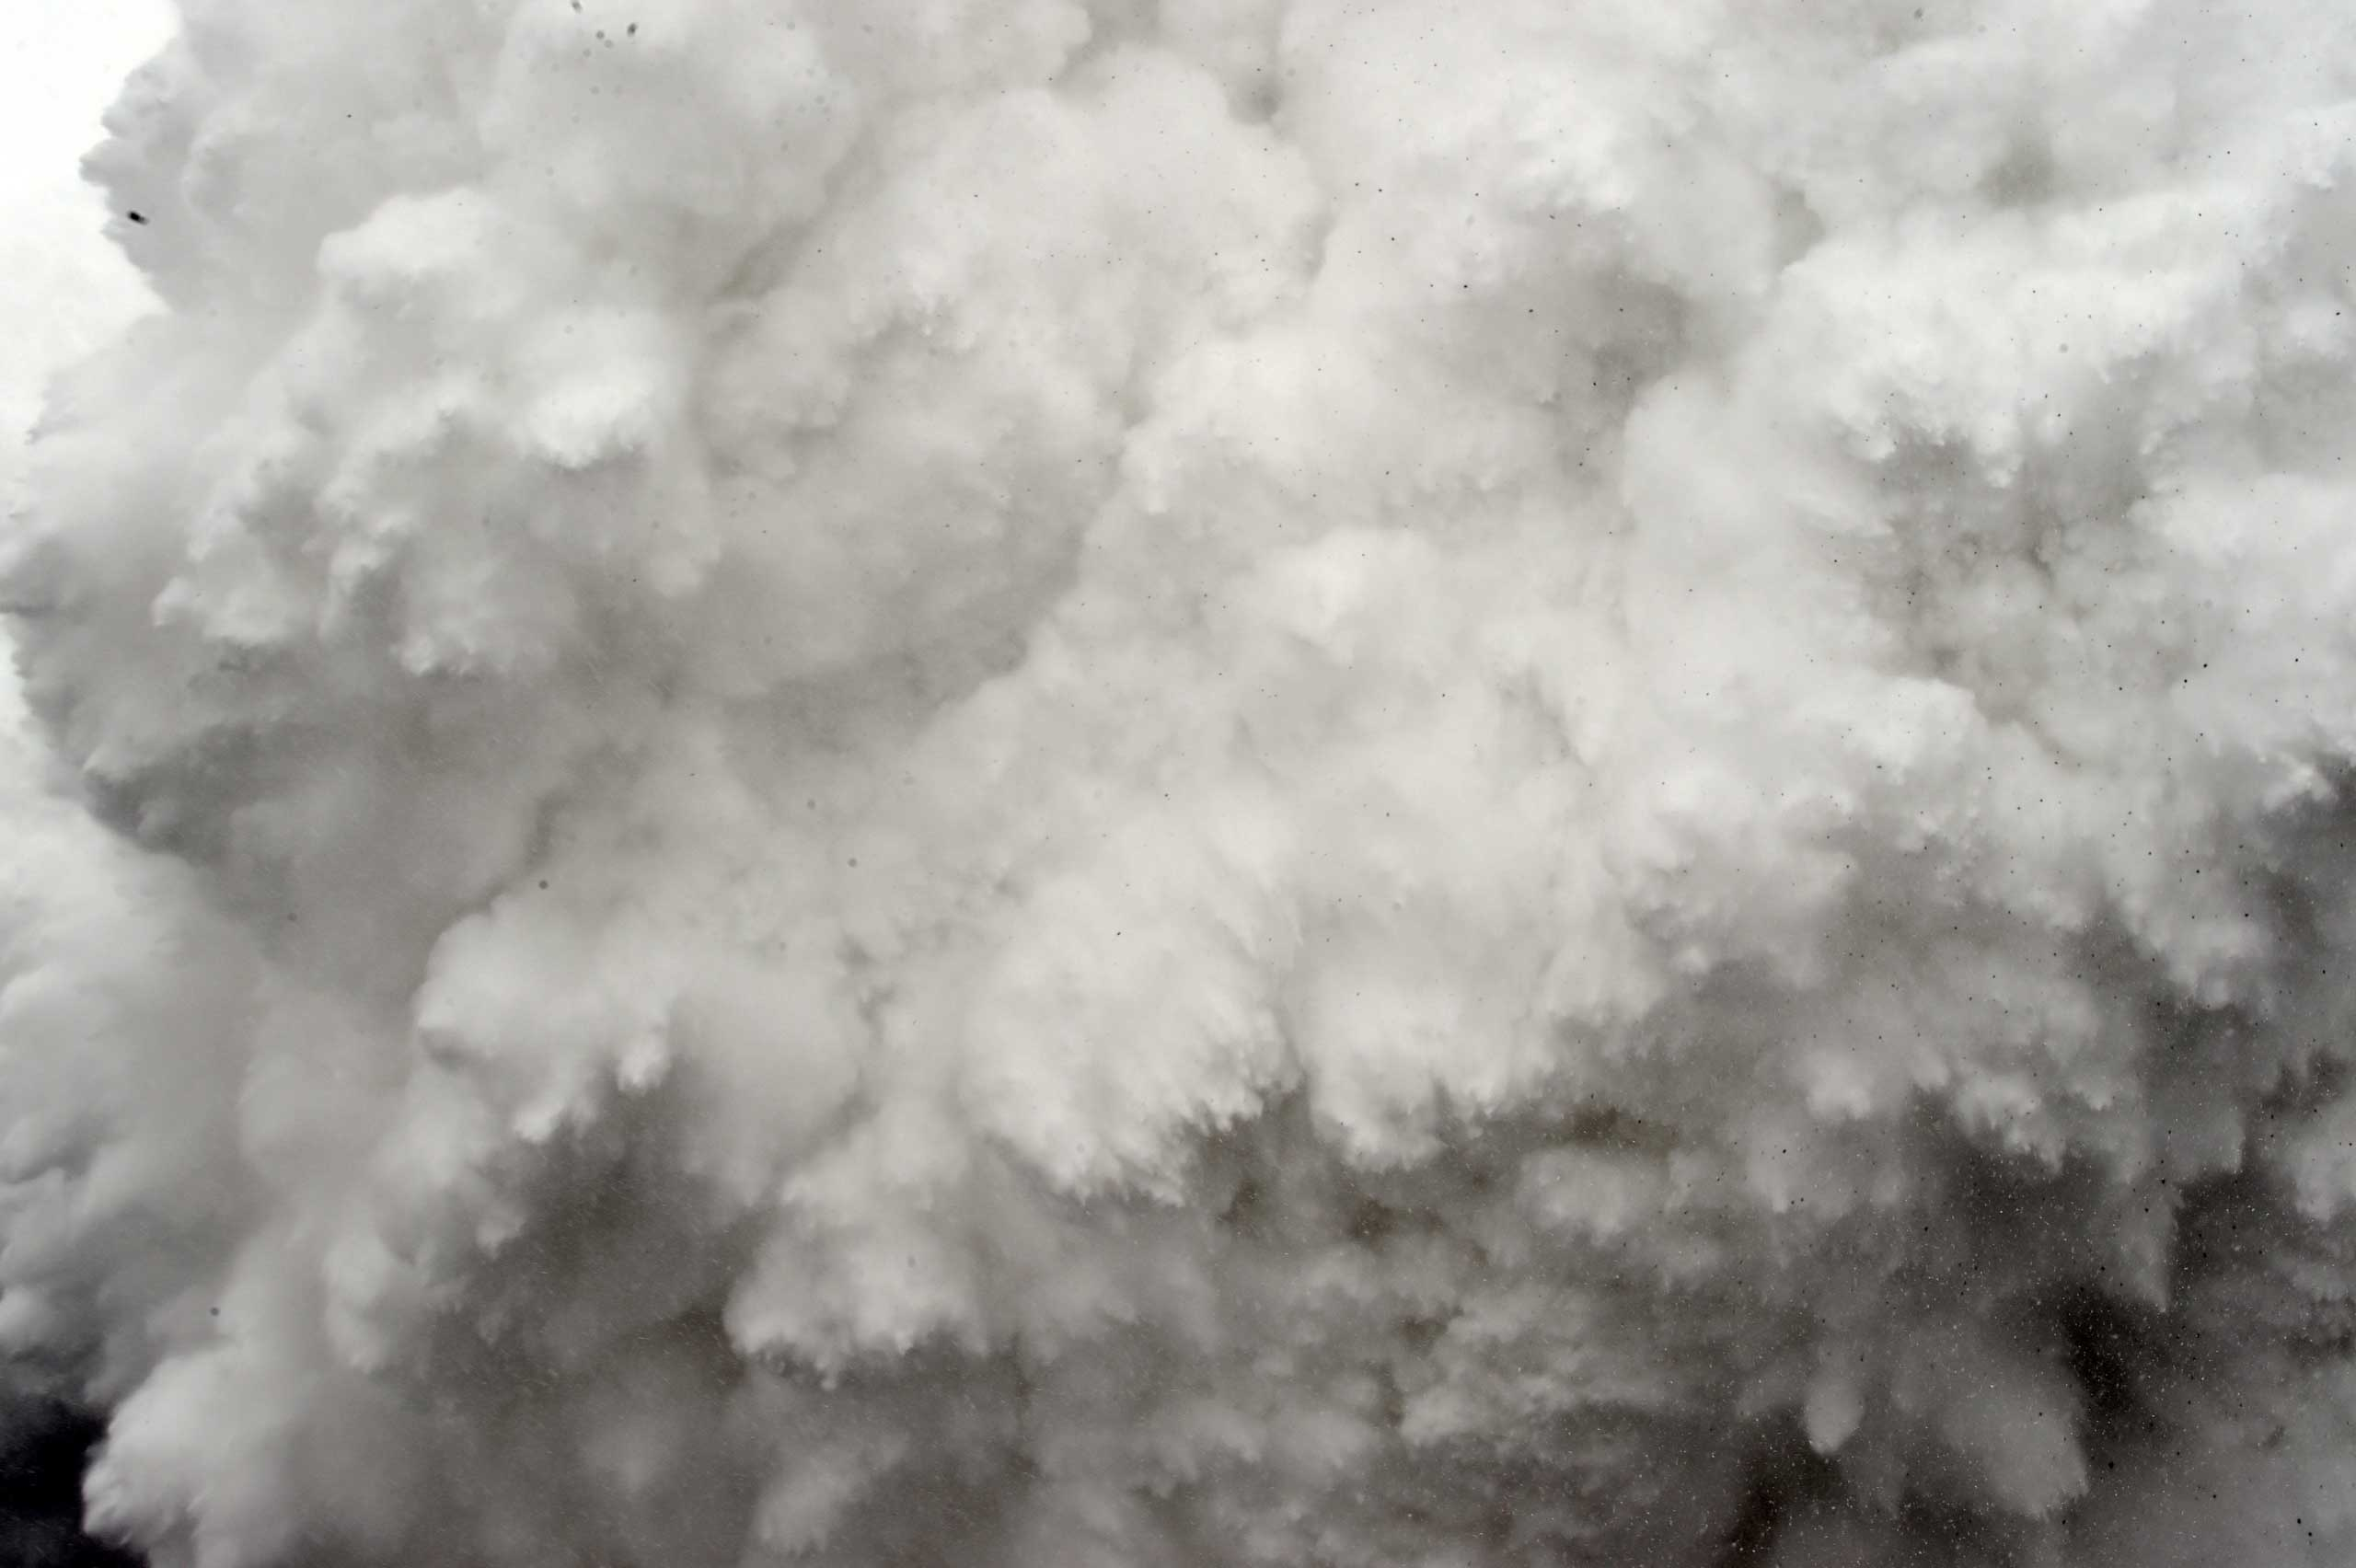 A cloud of snow and debris triggered by an earthquake flies towards Everest Base Camp, moments before parts of the camp were flattened, in the Himalayas, Nepal, on April 25, 2015.